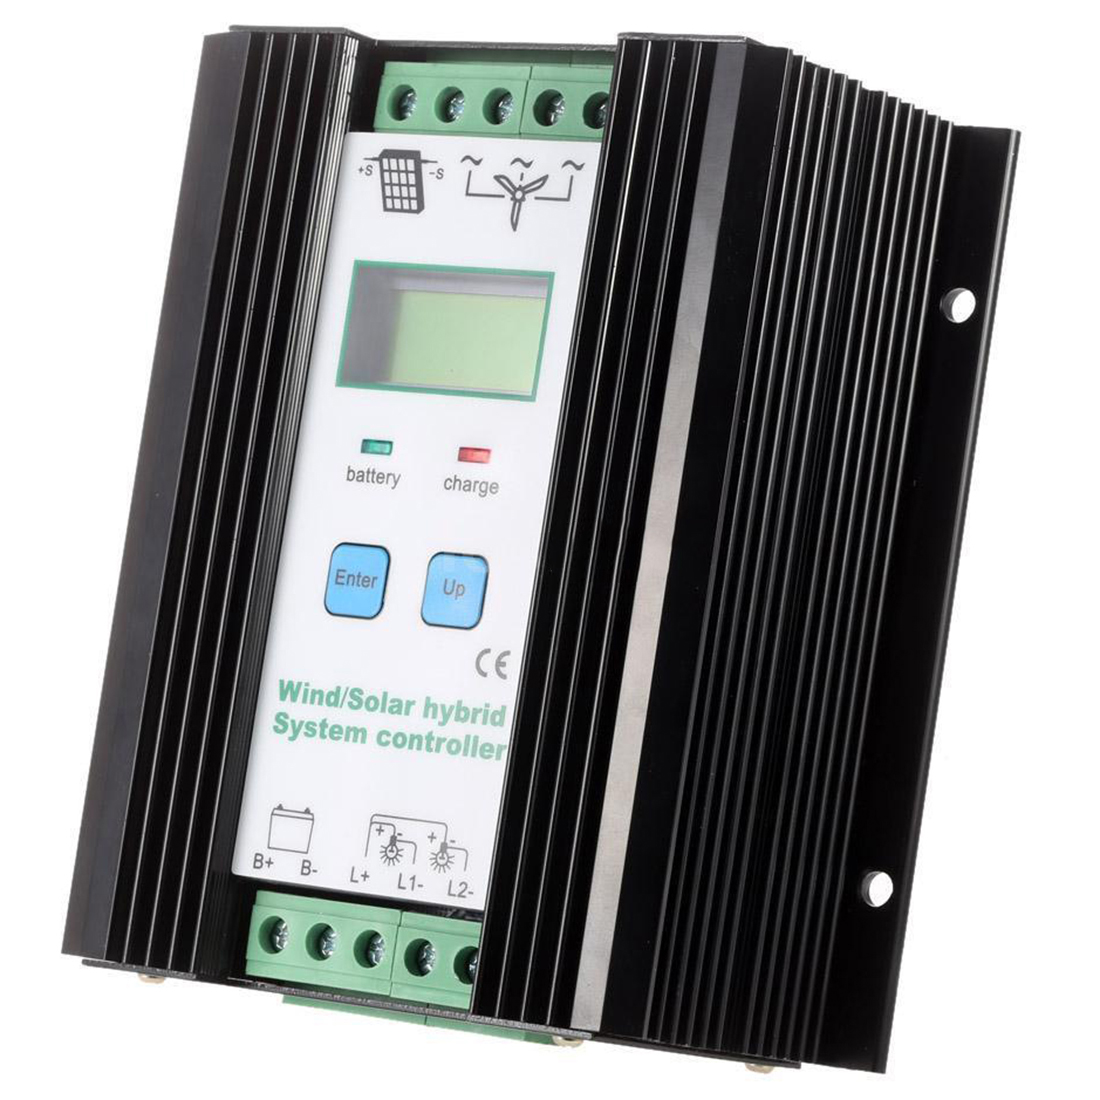 Wind&Solar Hybrid PWM Controller(600W Wind+400W Solar) 12V/24V Automatic 600w wind solar hybrid controller 400w wind turbine 200w solar panel charge controller 12v 24v auto with big lcd display